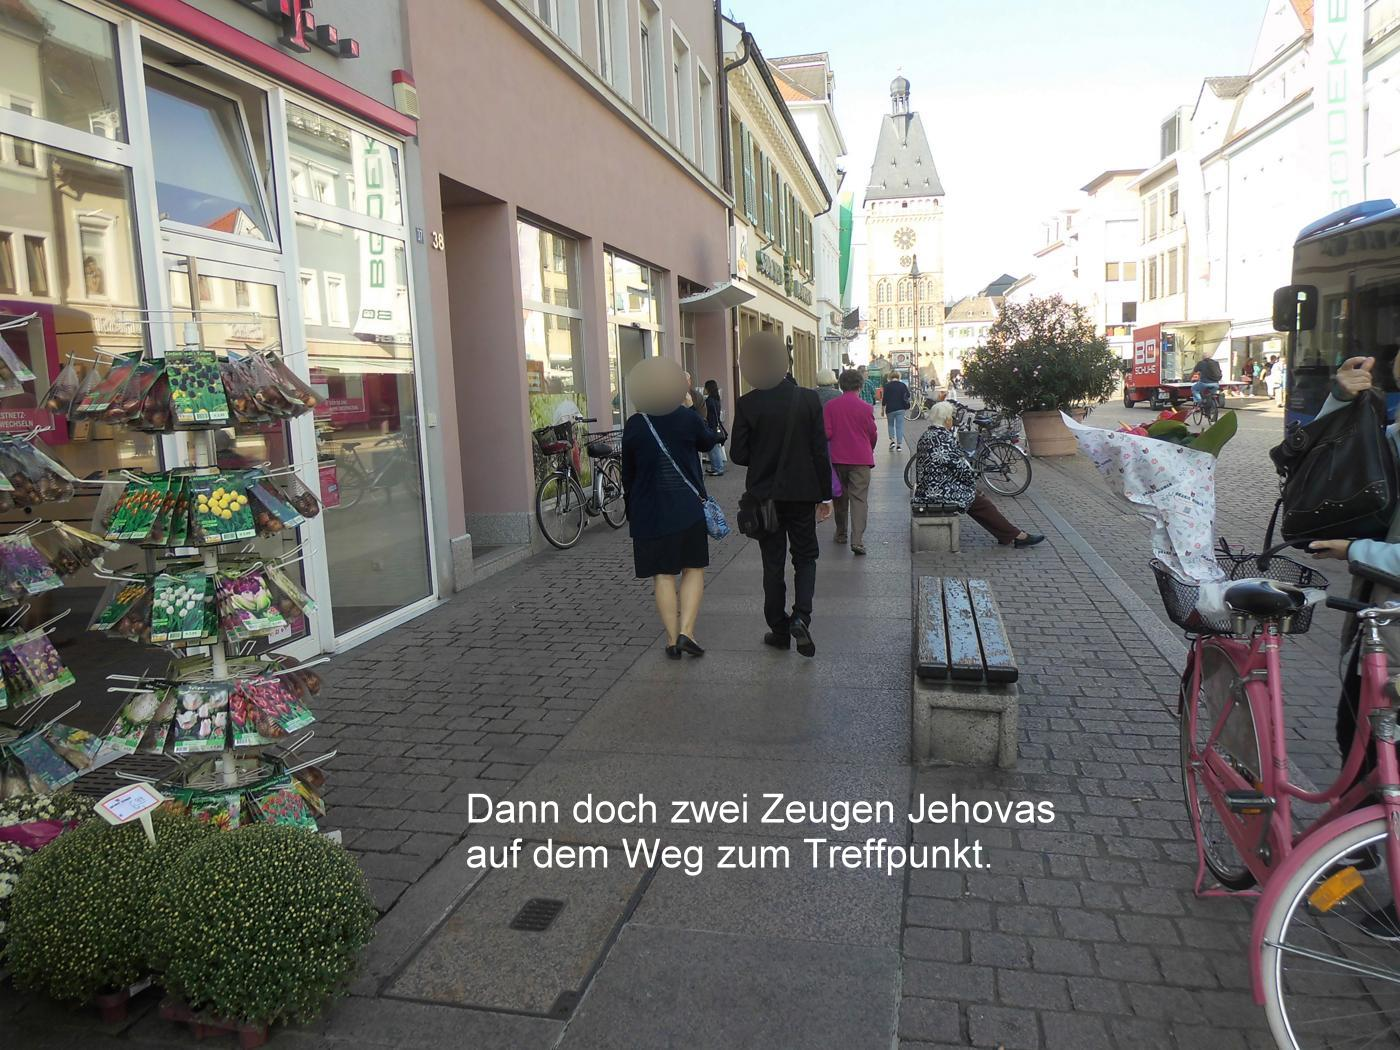 Jehovah's Witnesses invisible in Speyer